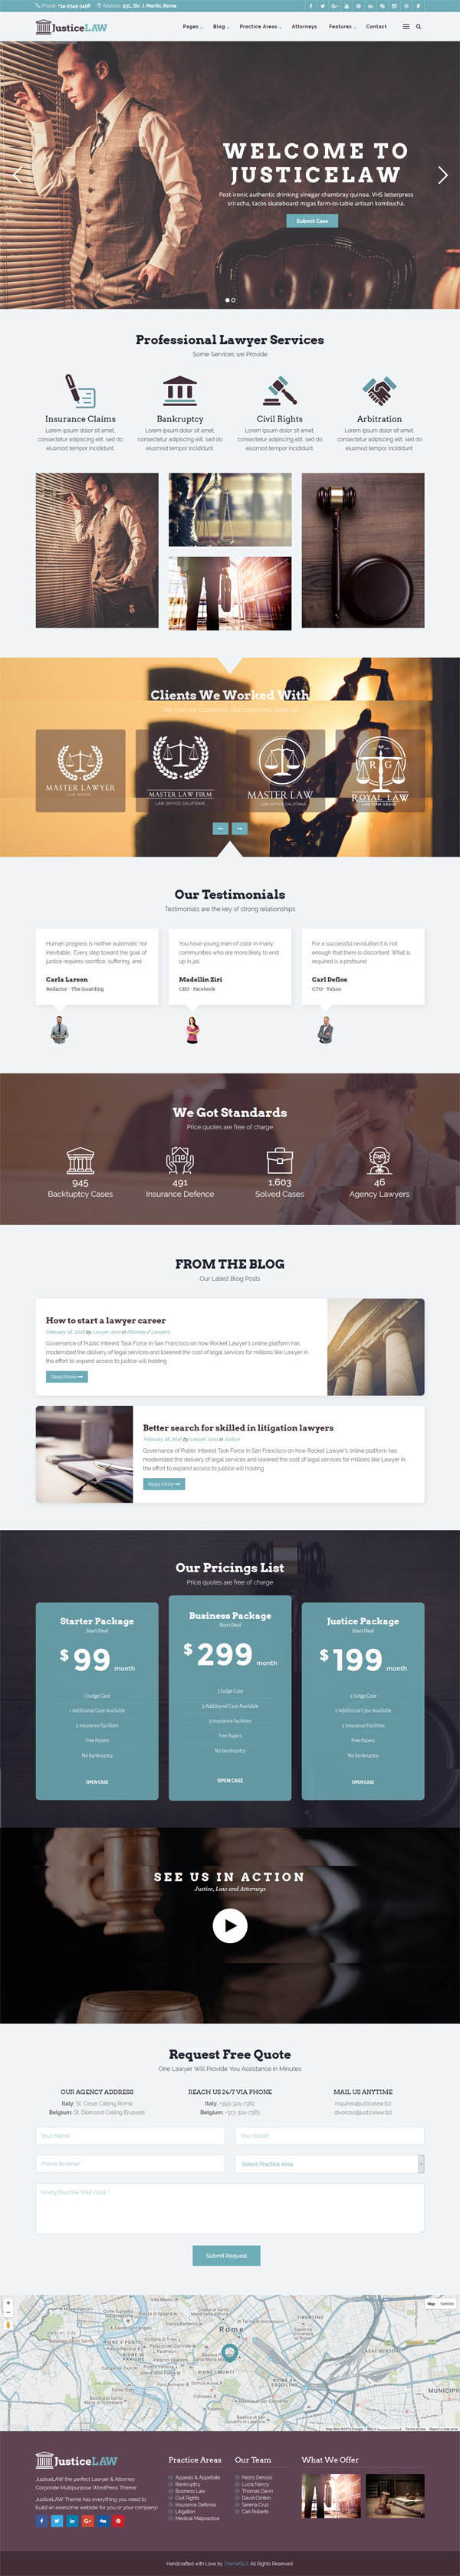 JusticeLAW : Corporate WordPress Theme for Lawyers Attorneys and Law Firms